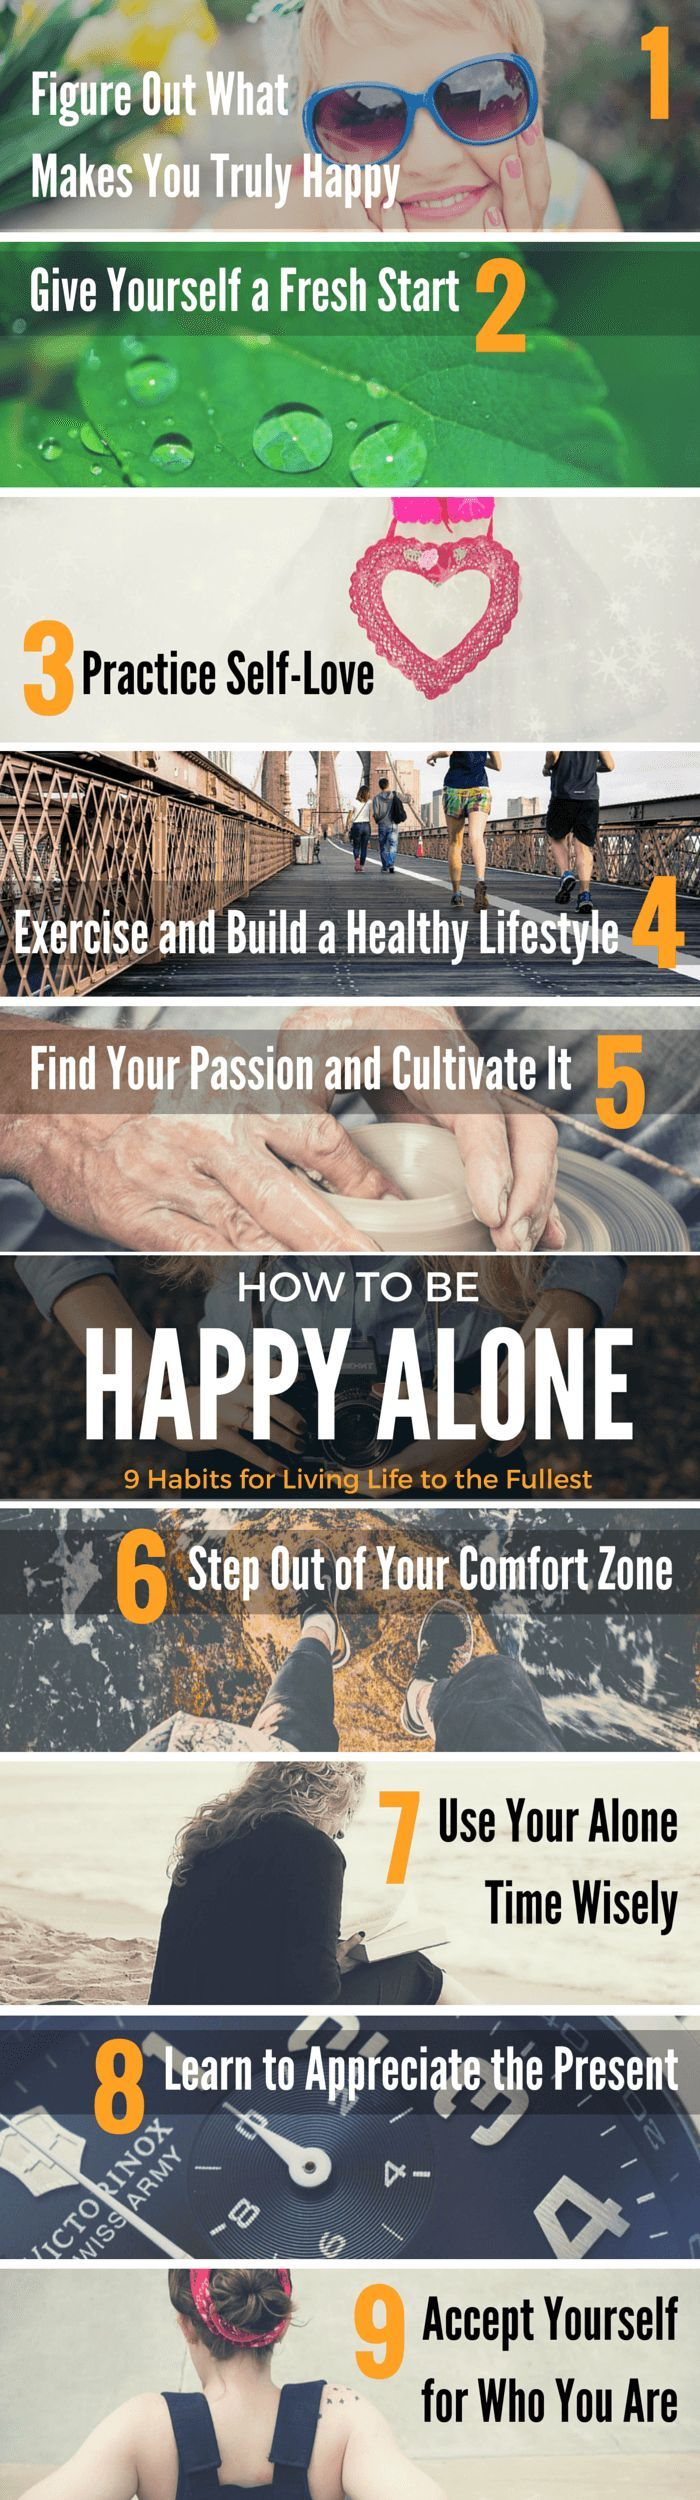 HOW TO BE HAPPY ALONE - you don't need others constantly around when you are happy with yourself.